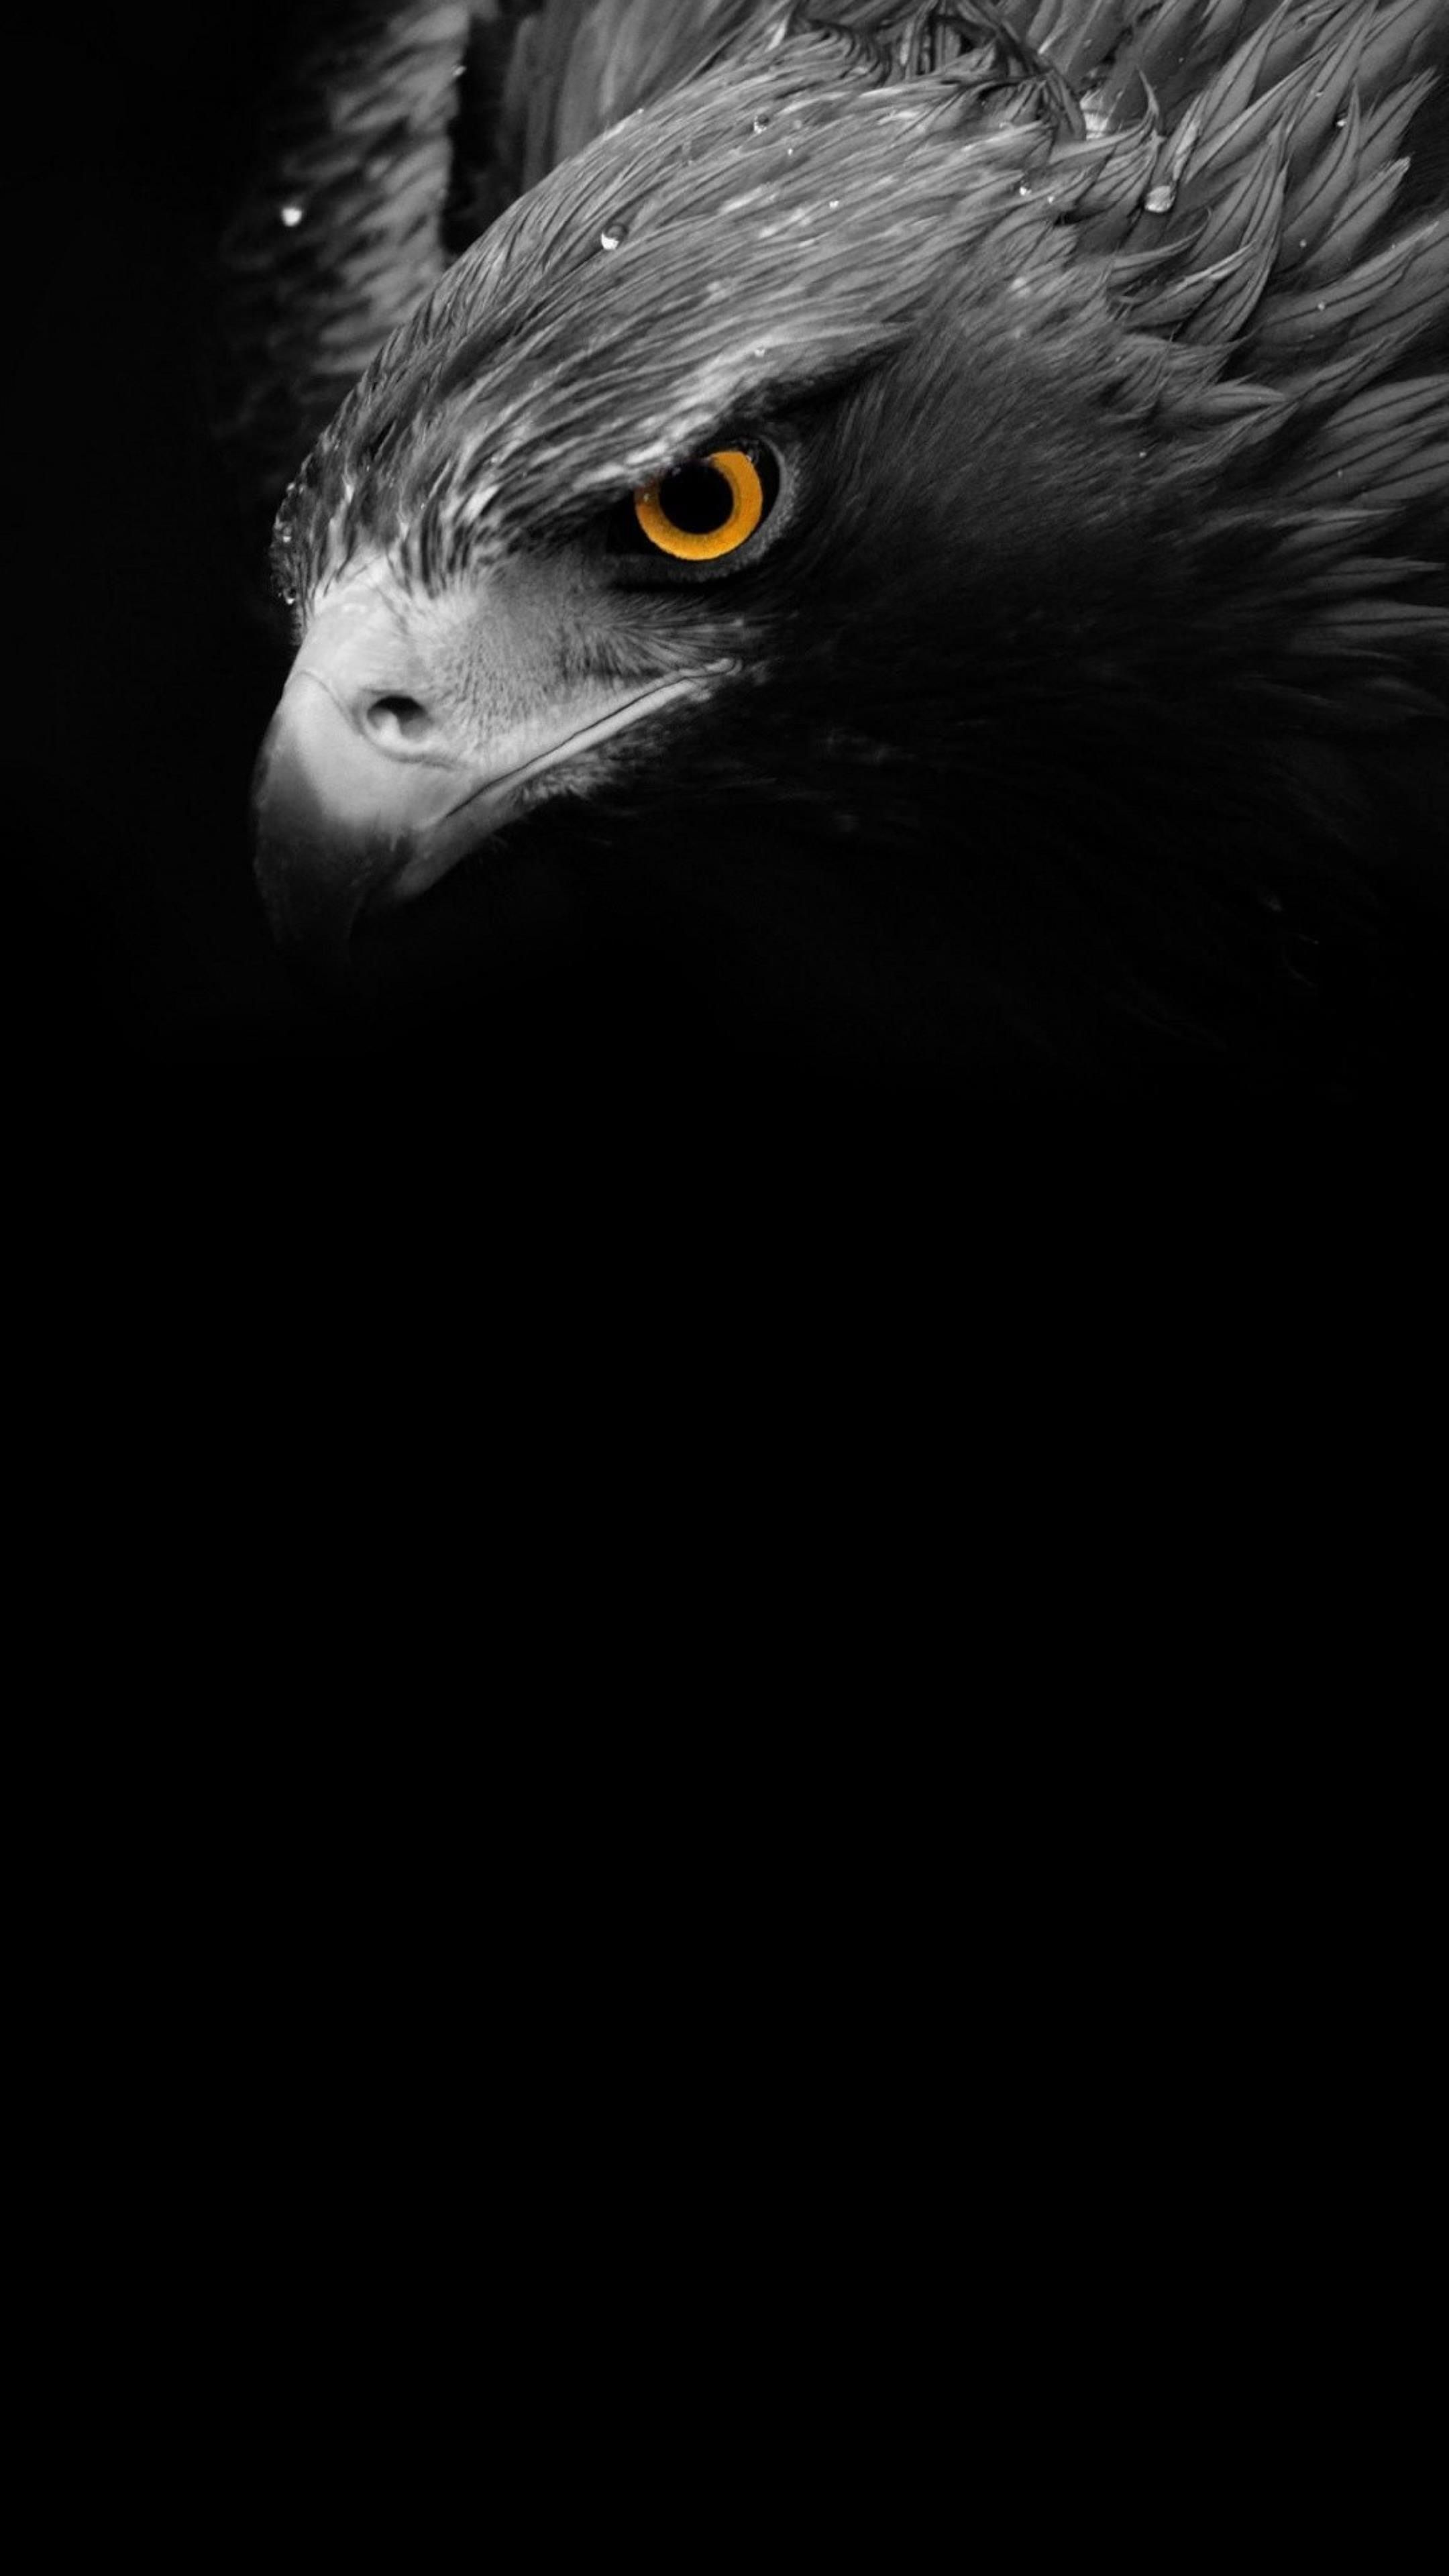 Amoled Animal Wallpaper Eagle Wallpaper Eagle Pictures Eagle Painting